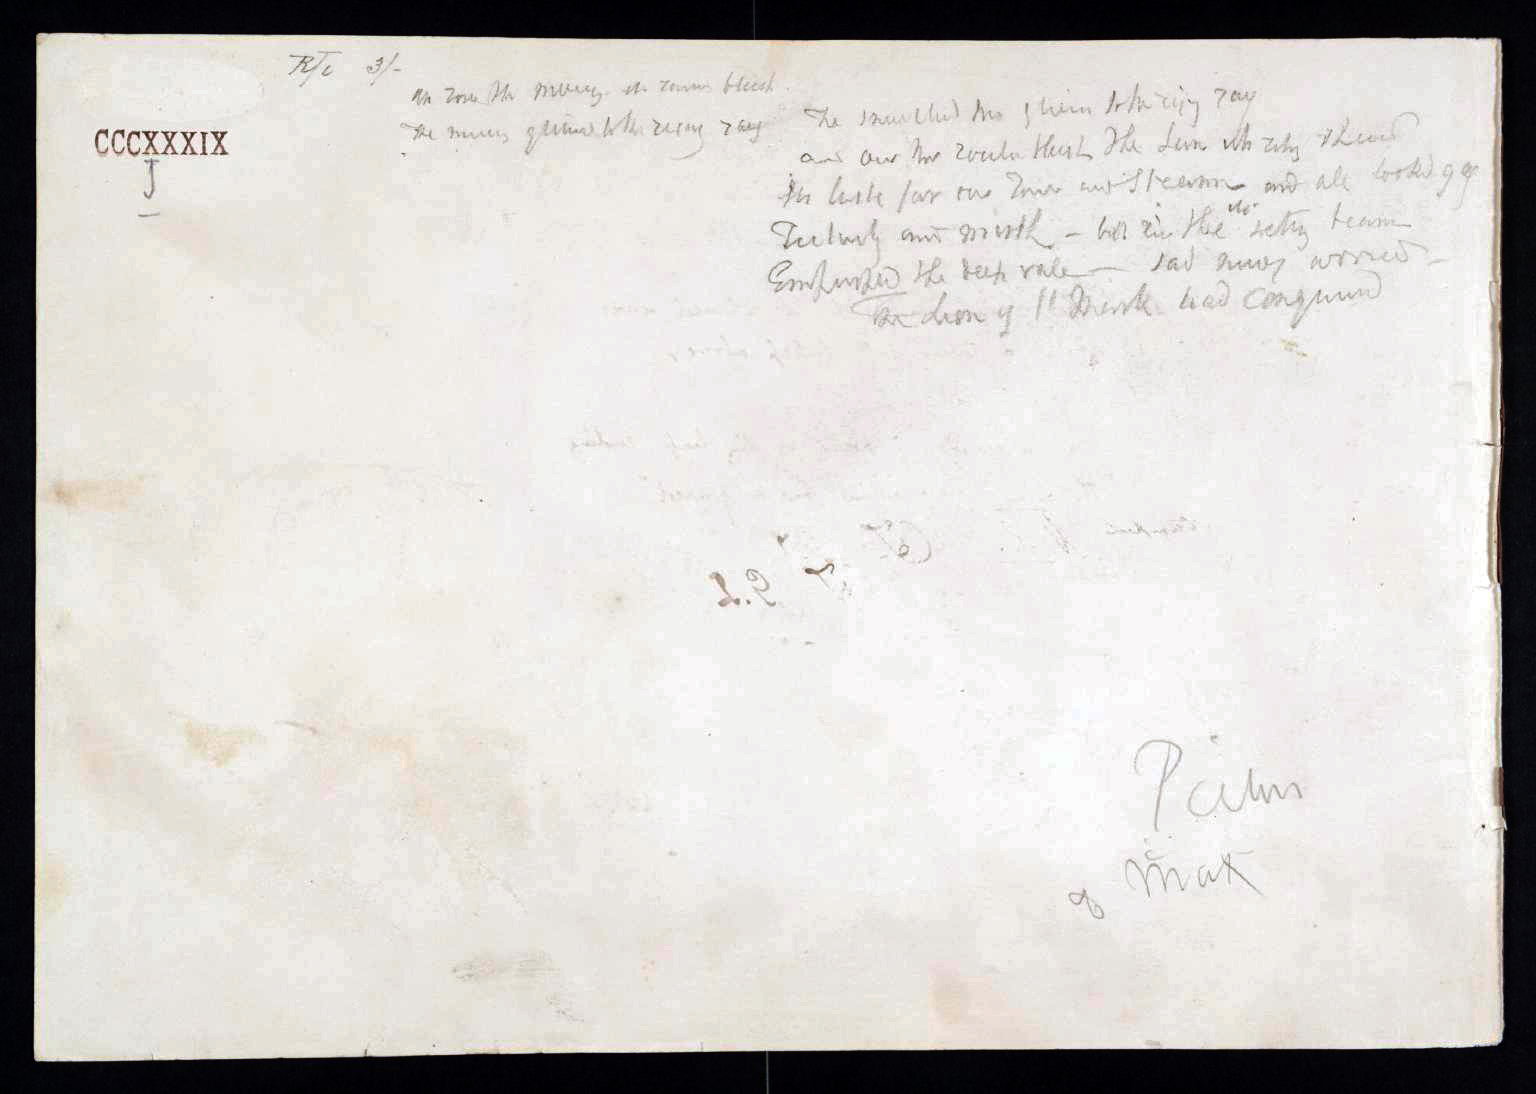 J M W Turner A draft composition of a passage of poetry, 1841? (whole page) Pencil on paper, page size 227 x 325 mm A page from the 'Mountain Fortress' sketchbook', Tate D40432.Turner Bequest CCCXXXIX 11 Tate Britain, London Photo courtesy of Tate. To view this image in Tate's own catalogue of the Turner bequest, click on the following link, and use your browser's 'back' button to return to this page. http://www.tate.org.uk/art/artworks/turner-title-not-known-d40432